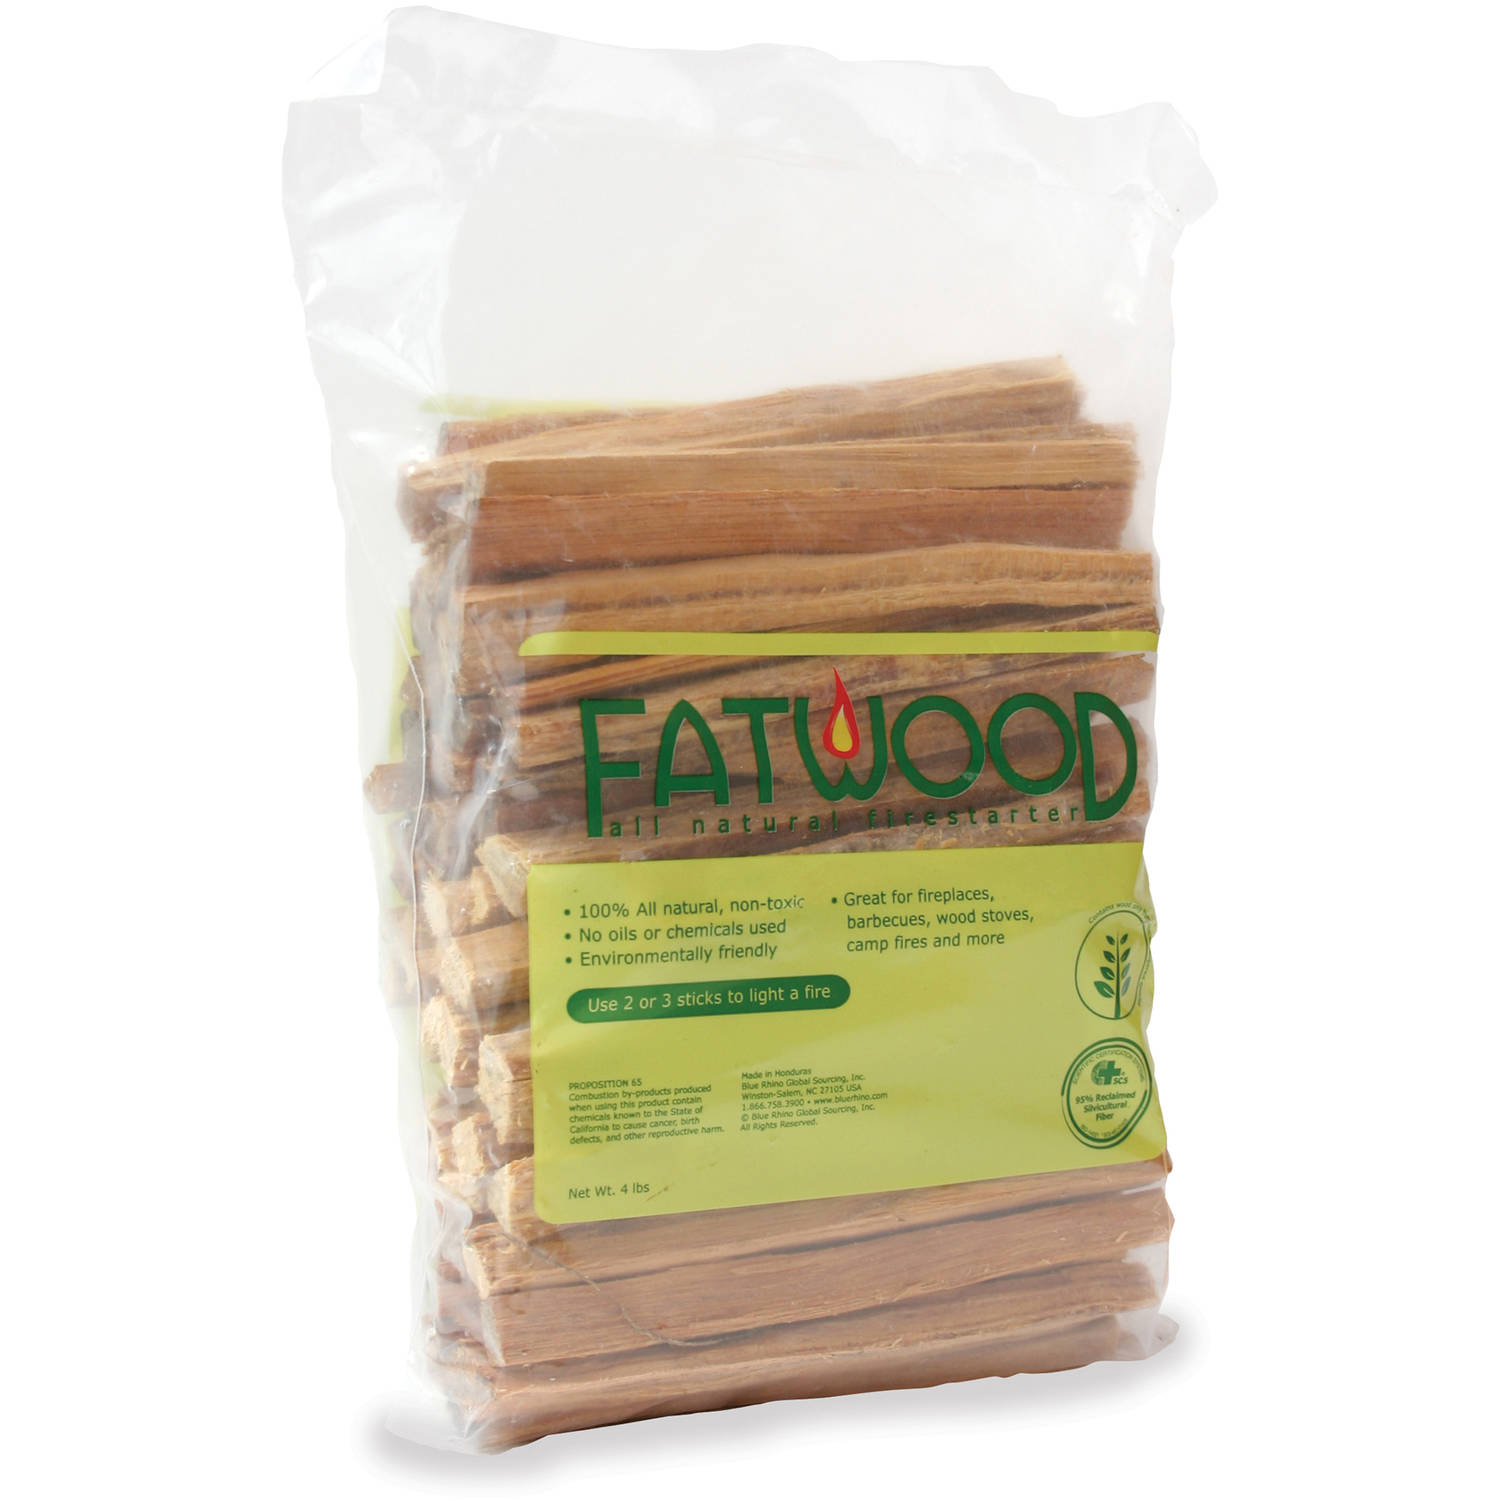 Blue Rhino Fatwood in Poly Bag, 4 lbs